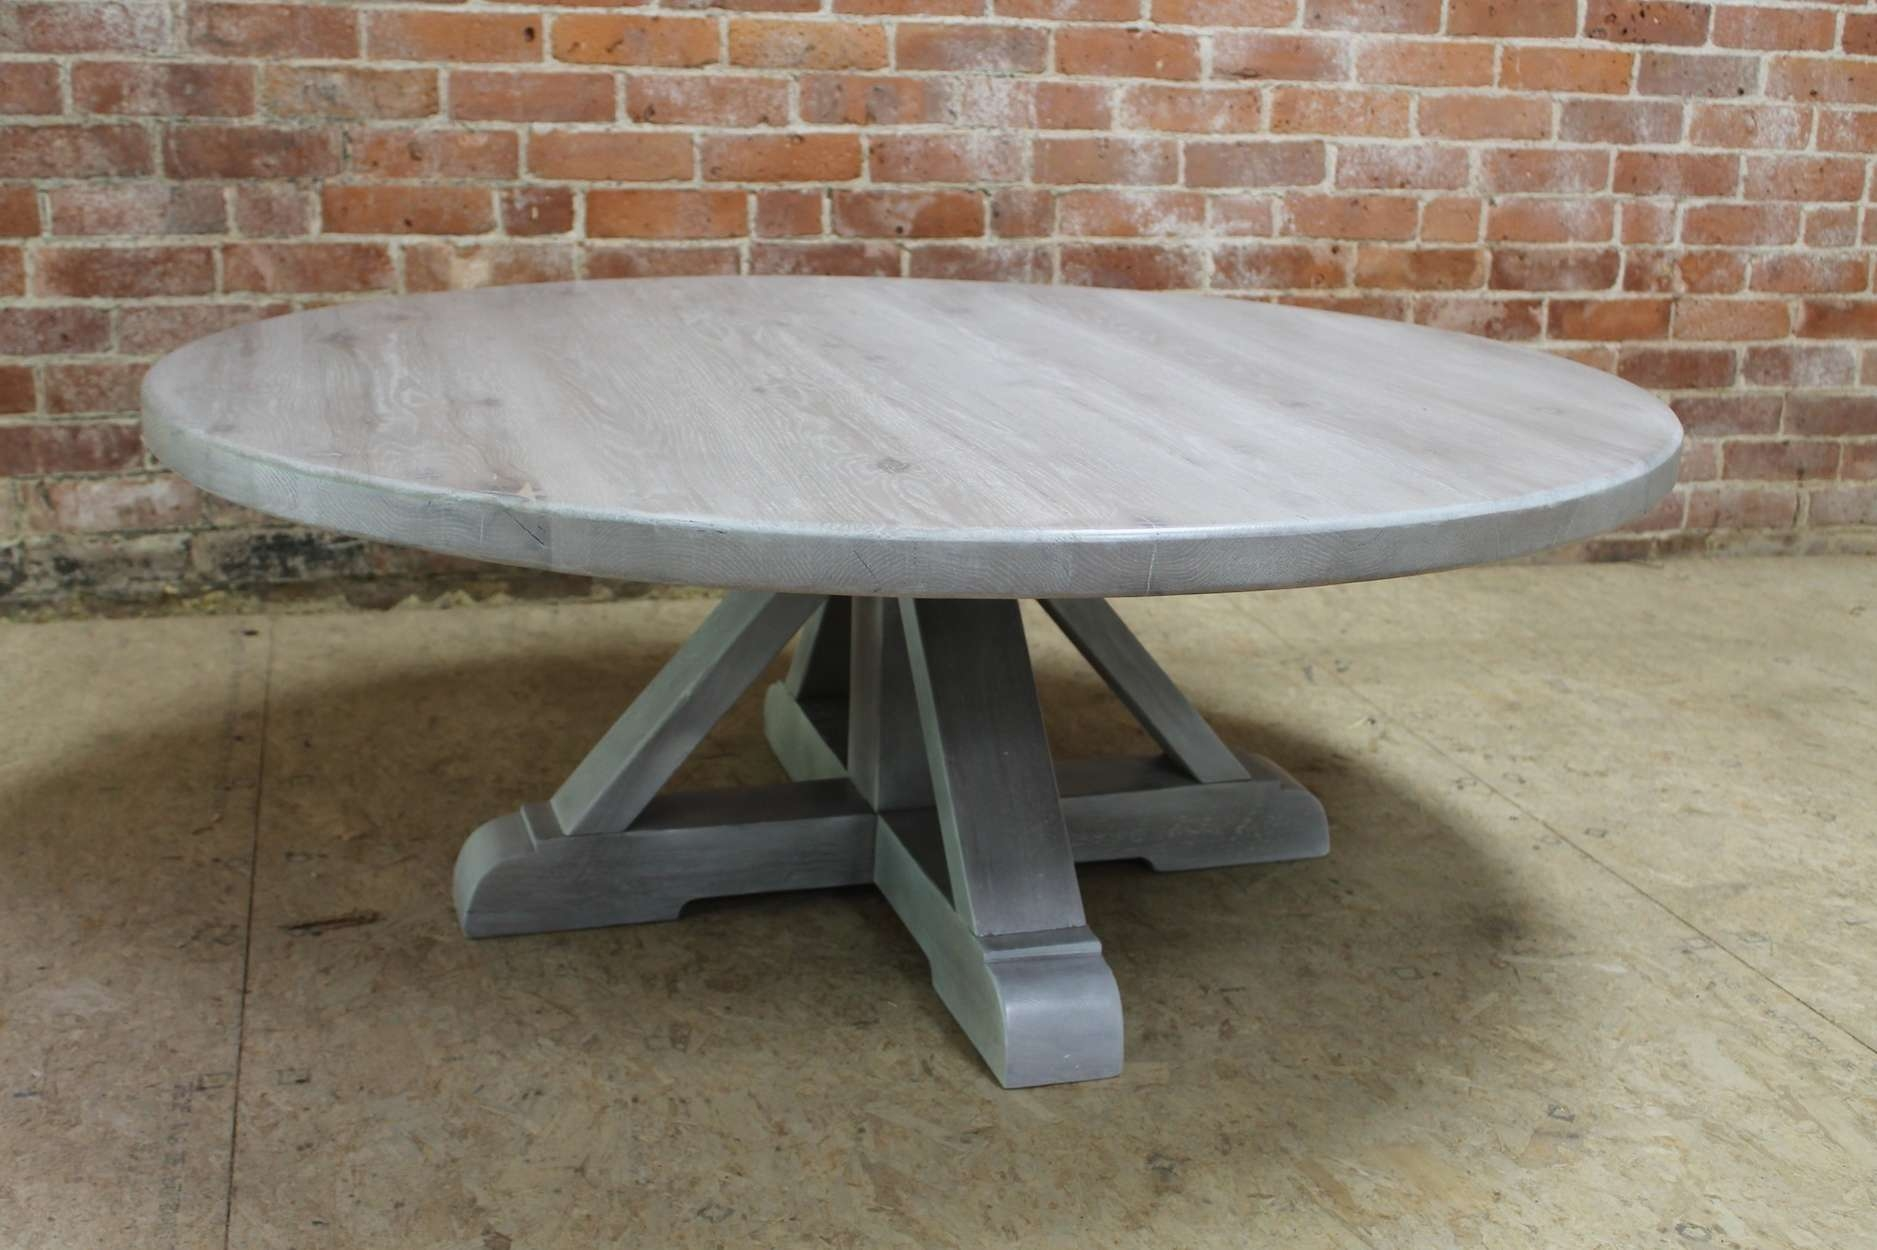 Widely Used Gray Wash Coffee Tables With Regard To Coffee Table : Magnificent Farmhouse Style Coffee Table Grey Wash (View 8 of 20)